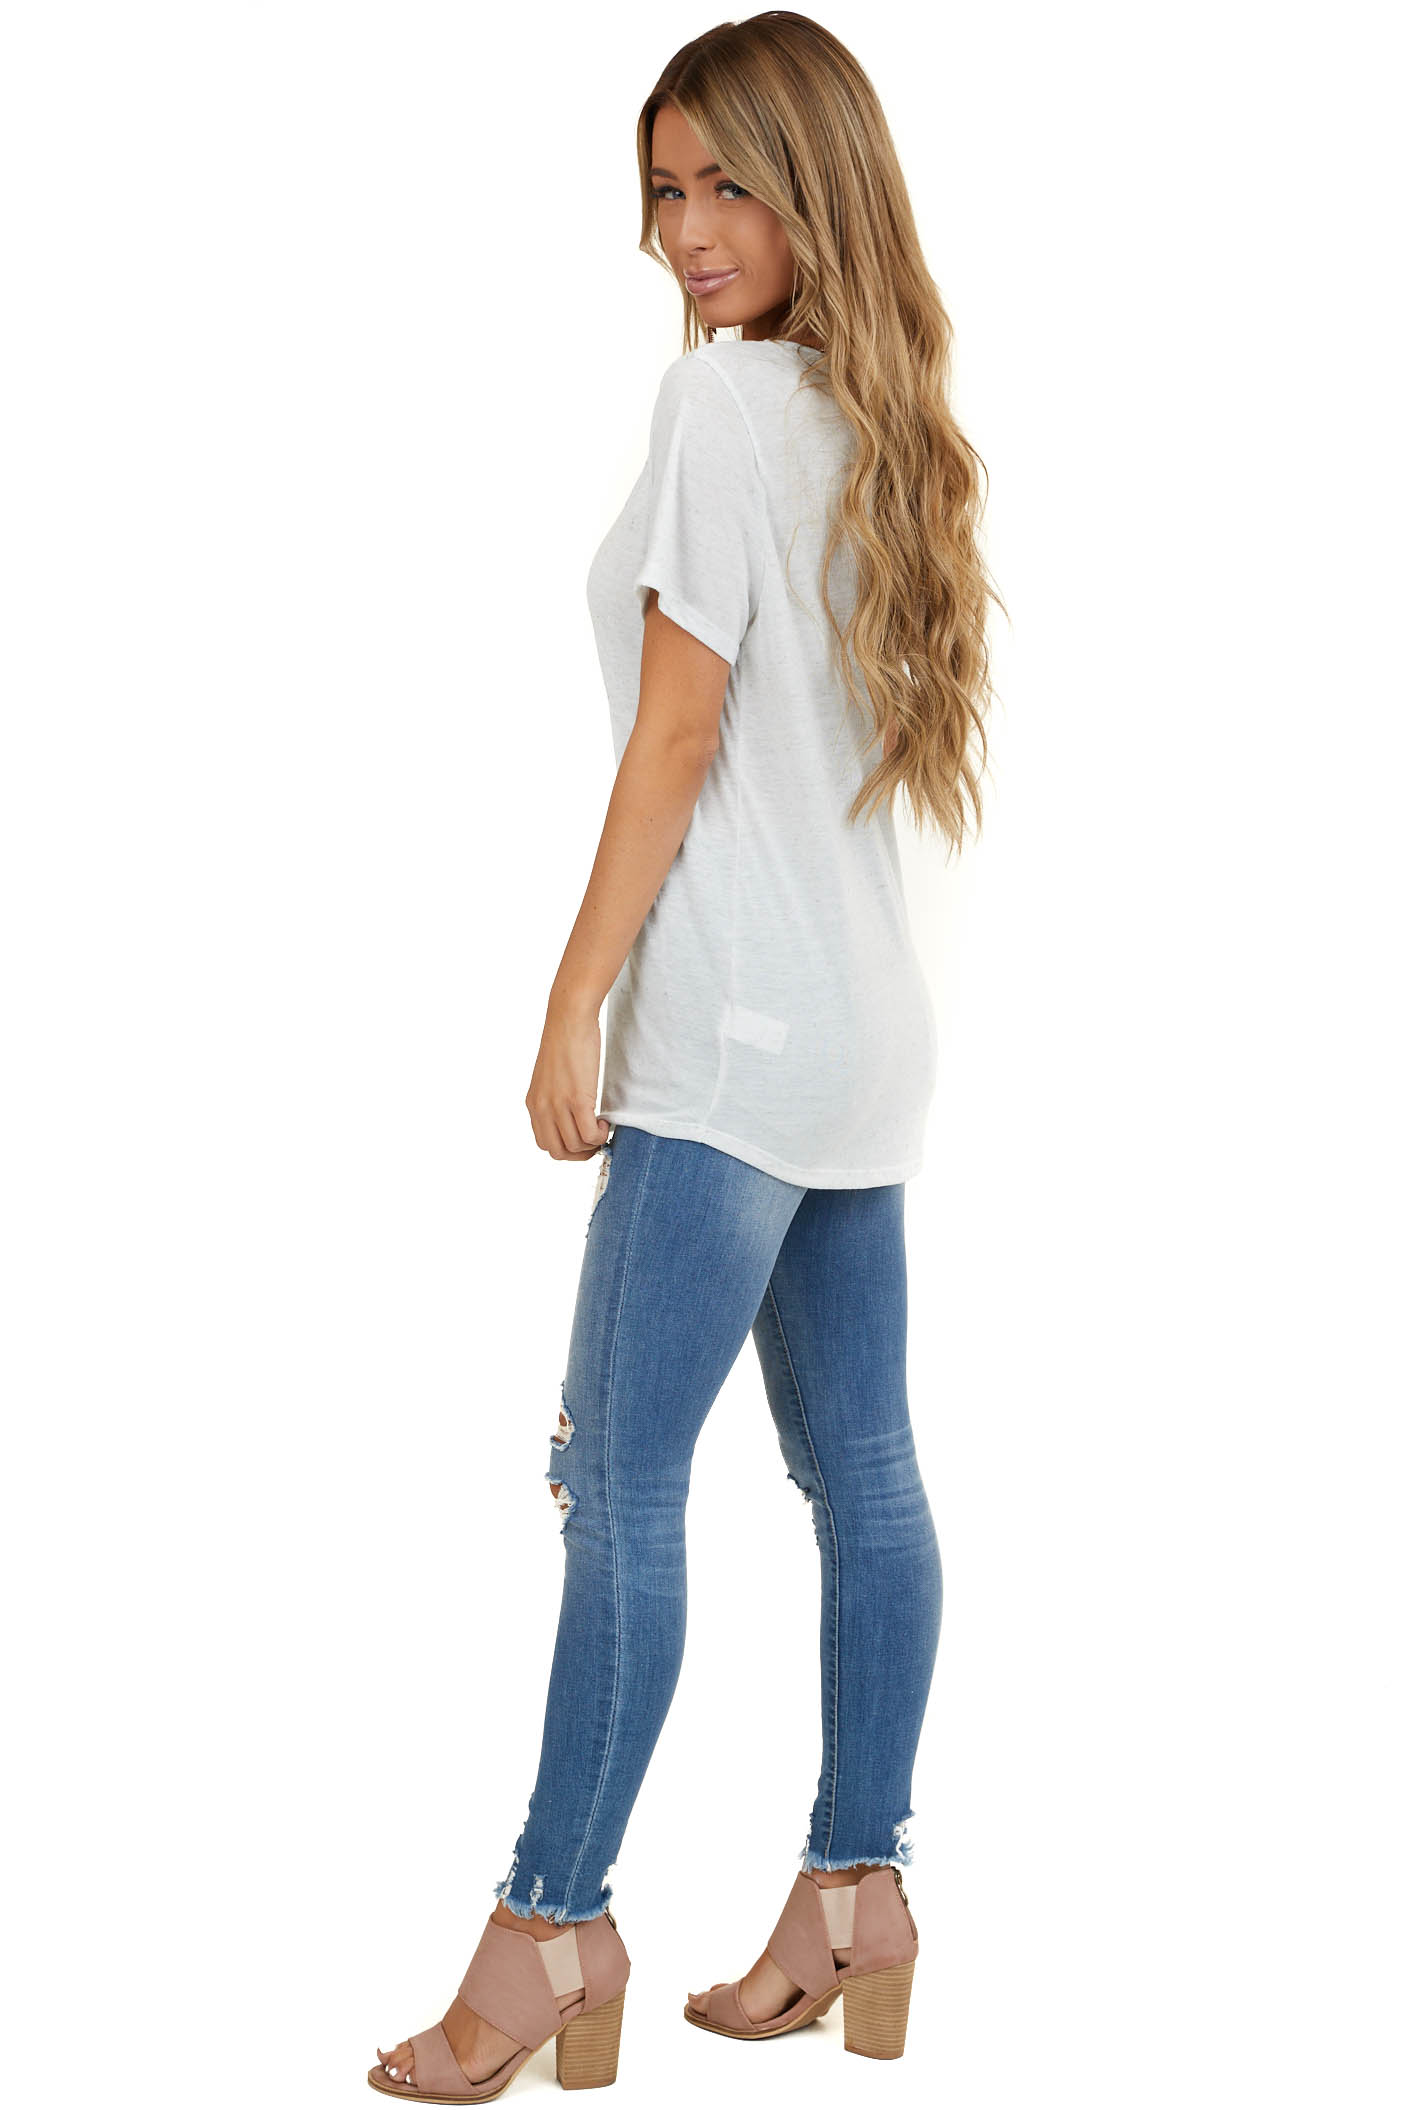 Heathered Eggshell White Knit Top with Caged Neckline Detail